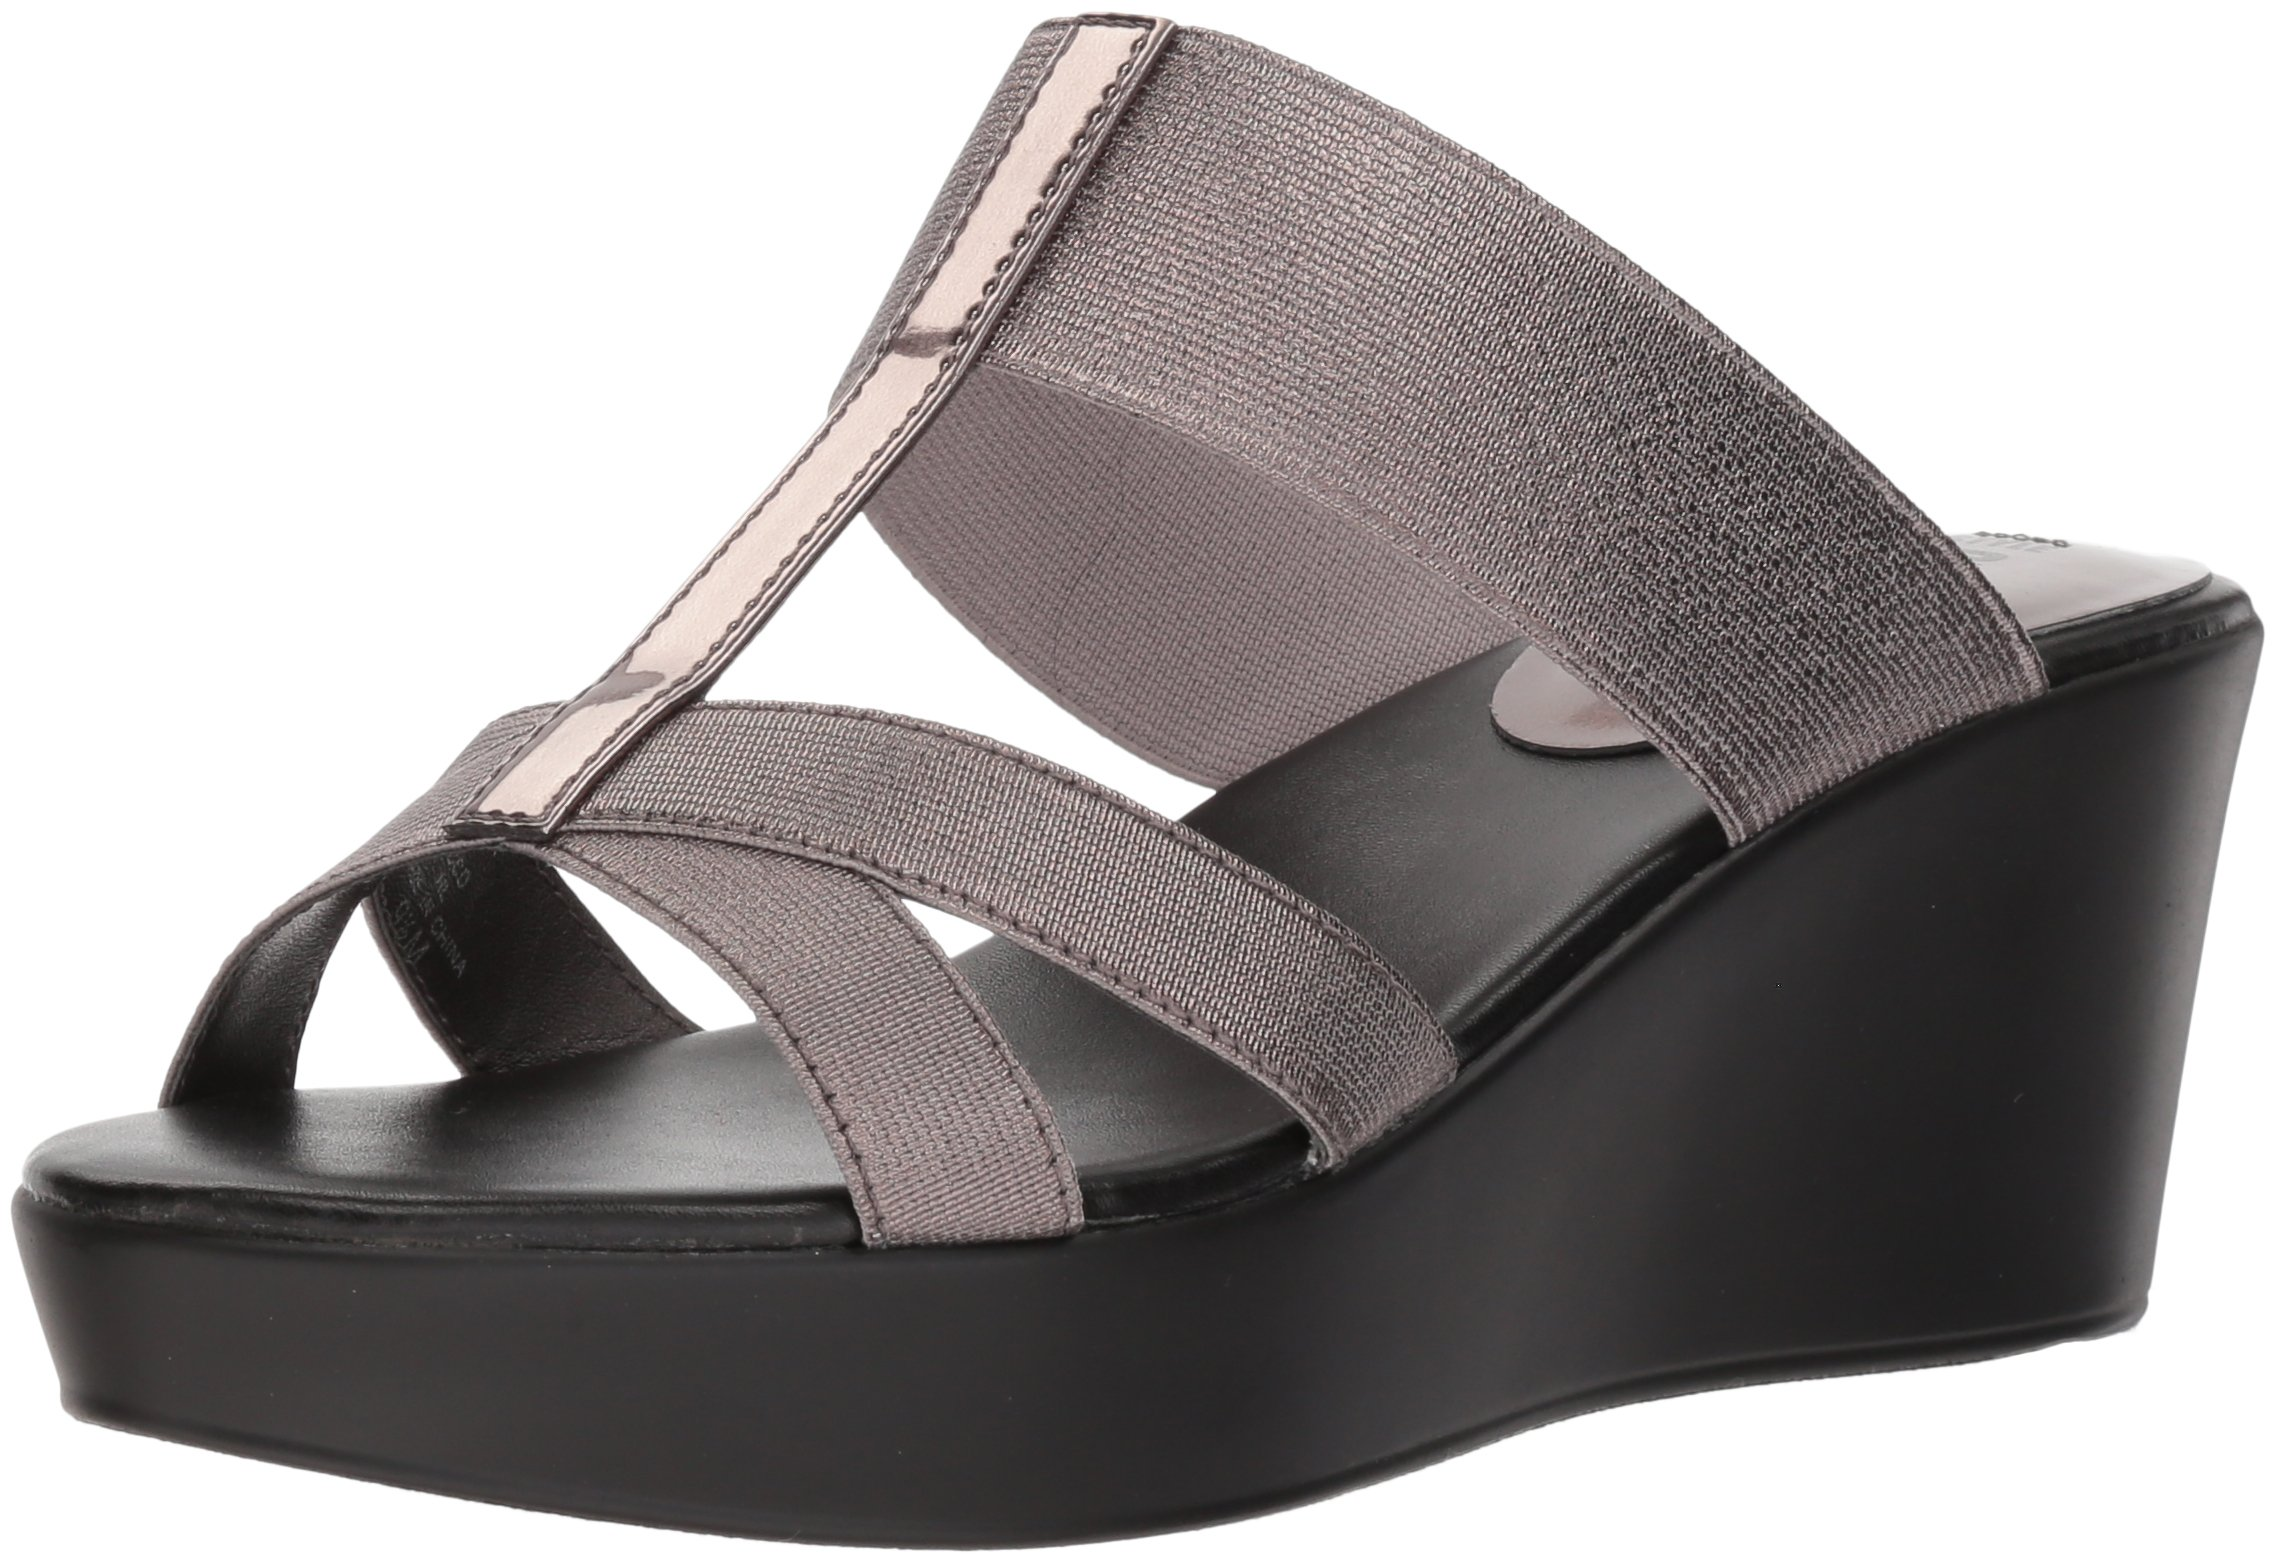 Style by Charles David Women's Japan Wedge Sandal, Pewter, 7 M US